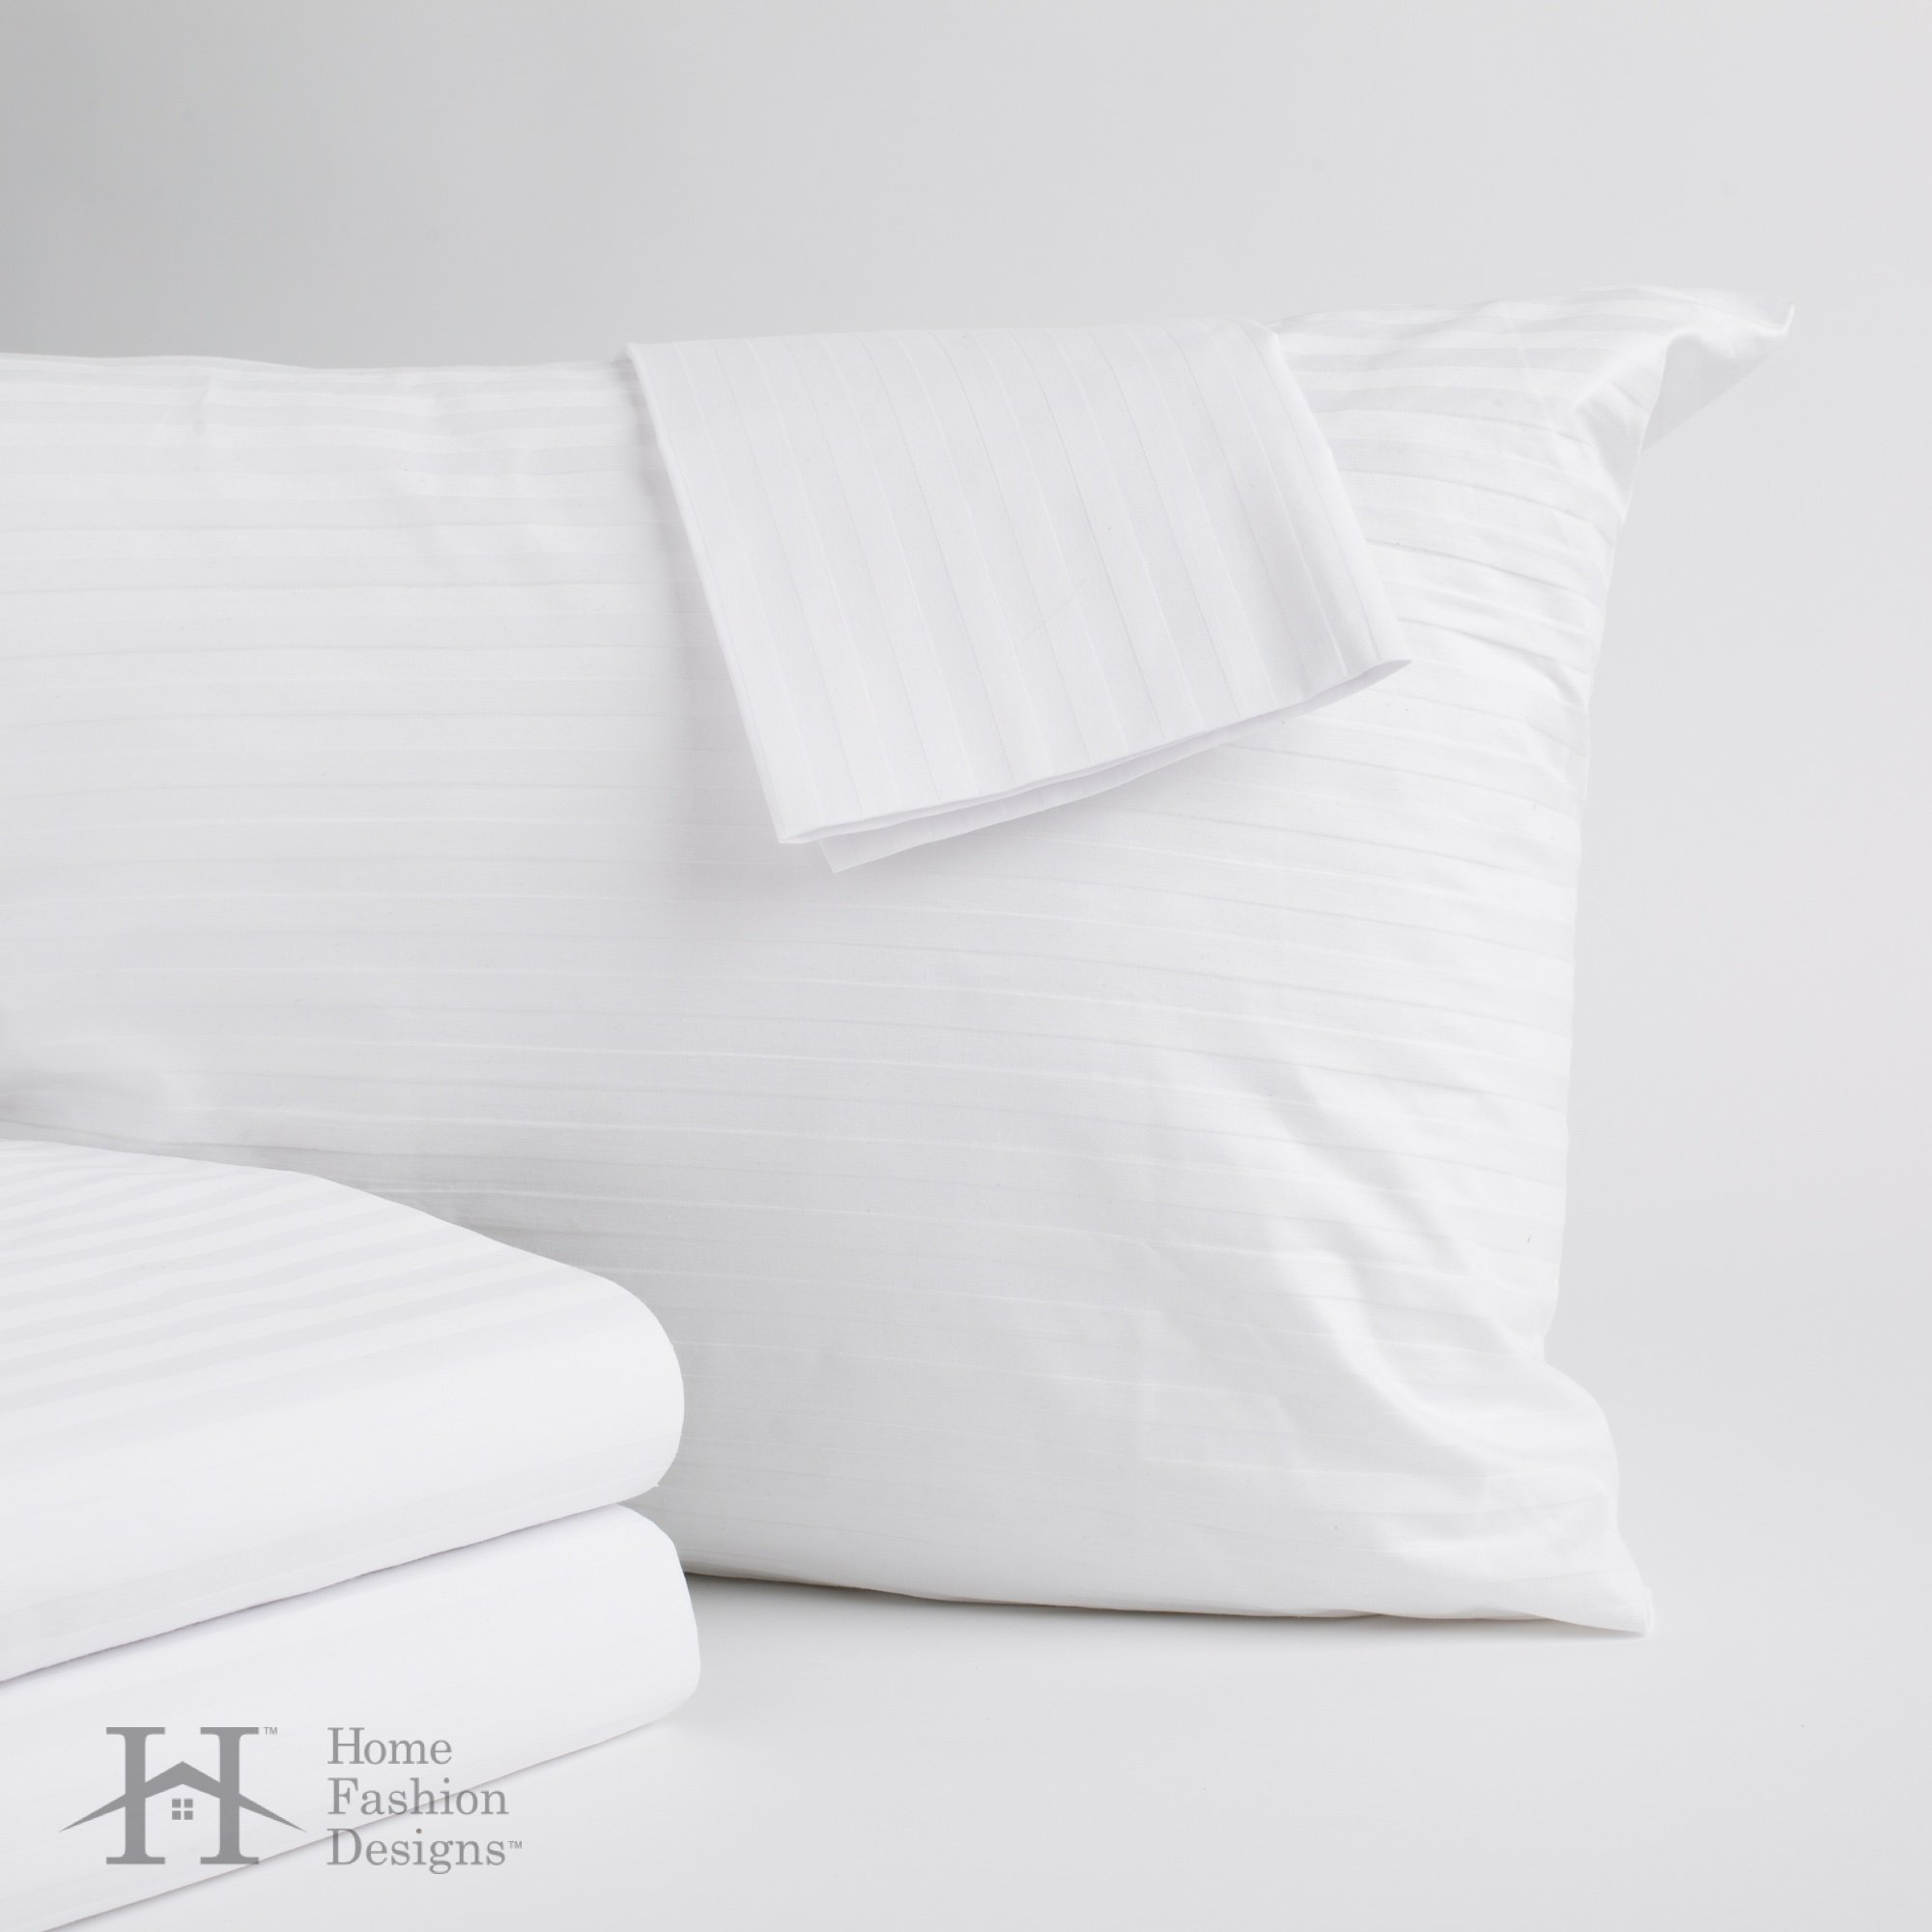 Home Fashion Designs 4-Pack Premium Allergy Protection Pillow Protectors. Hypoallergenic Dust Mite & Bed Bug Resistant Anti-Microbial 400 Thread Count 100% Cotton Zippered Pillow Covers. (Standard) by Home Fashion Designs (Image #1)